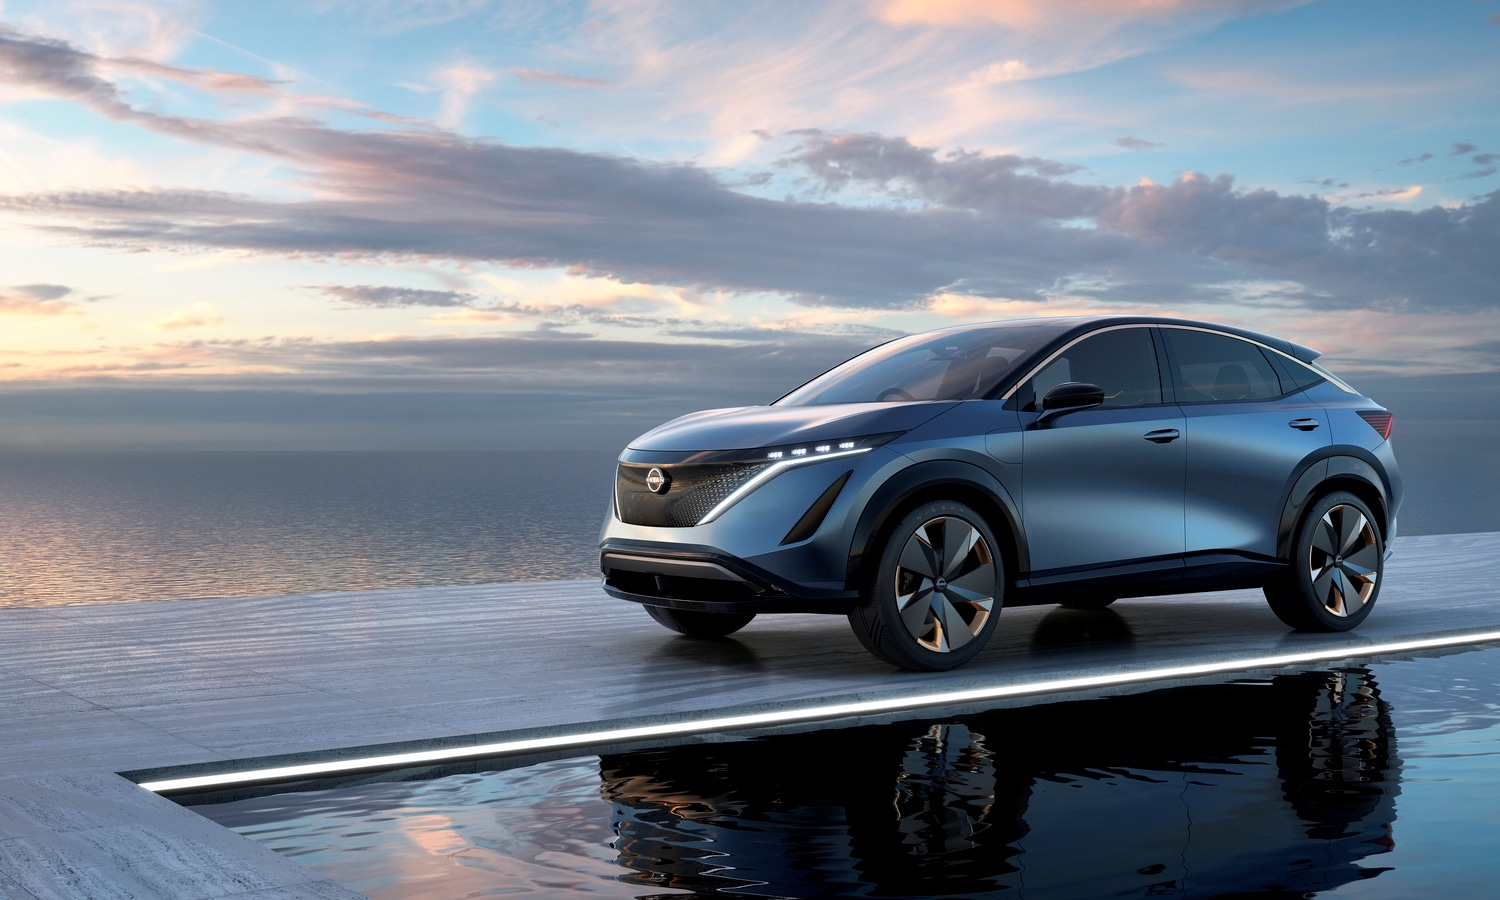 Nissan Ariya Concept 2019 front-side